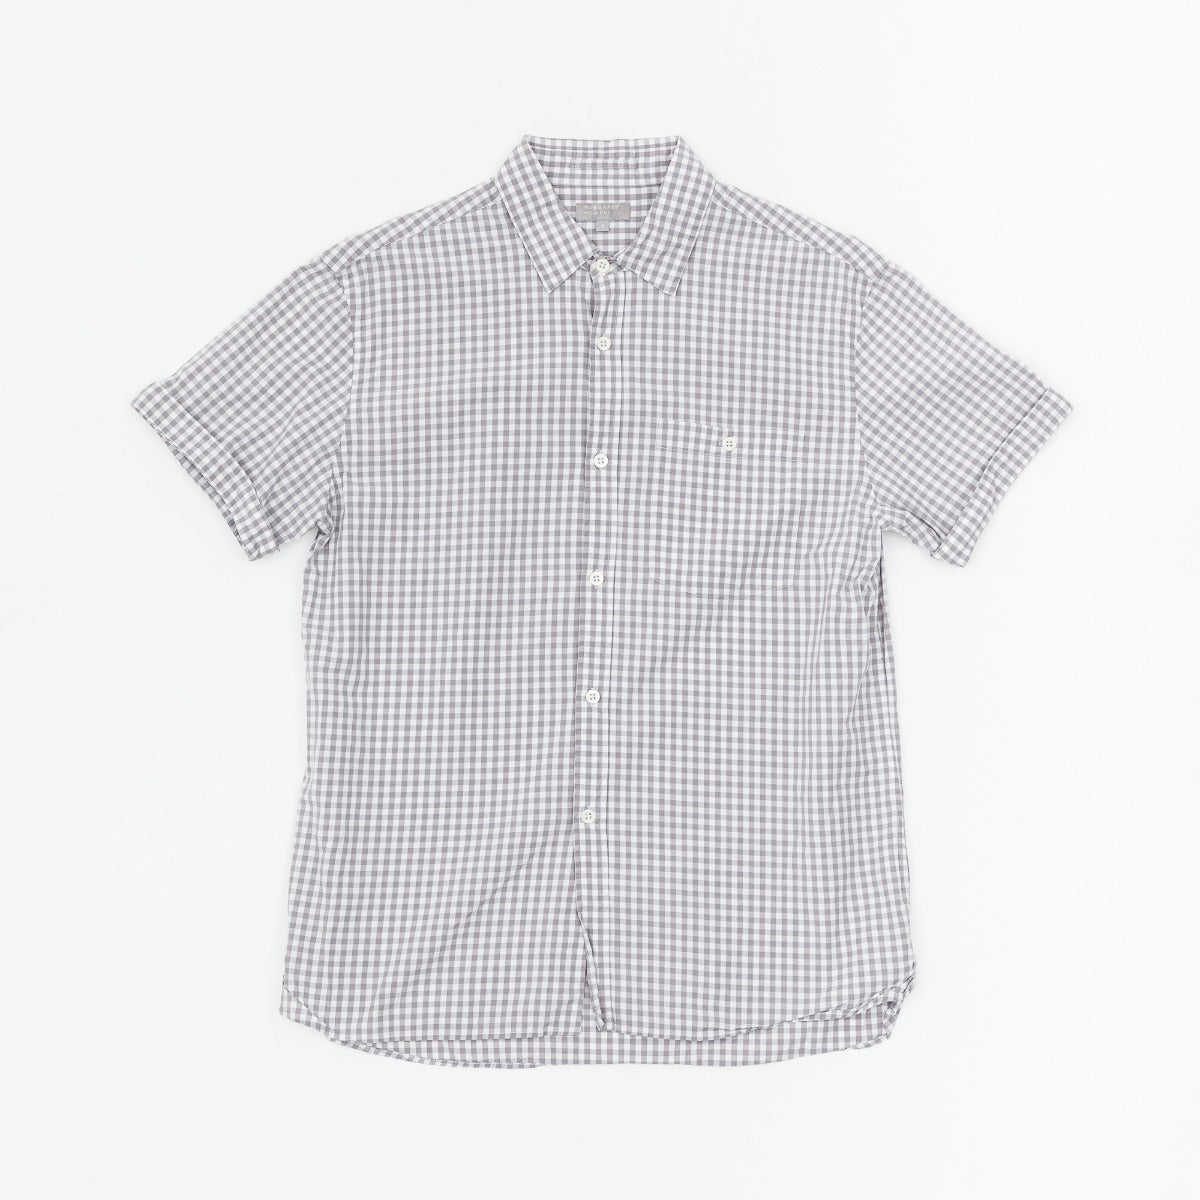 Margaret Howell SS Check Shirt